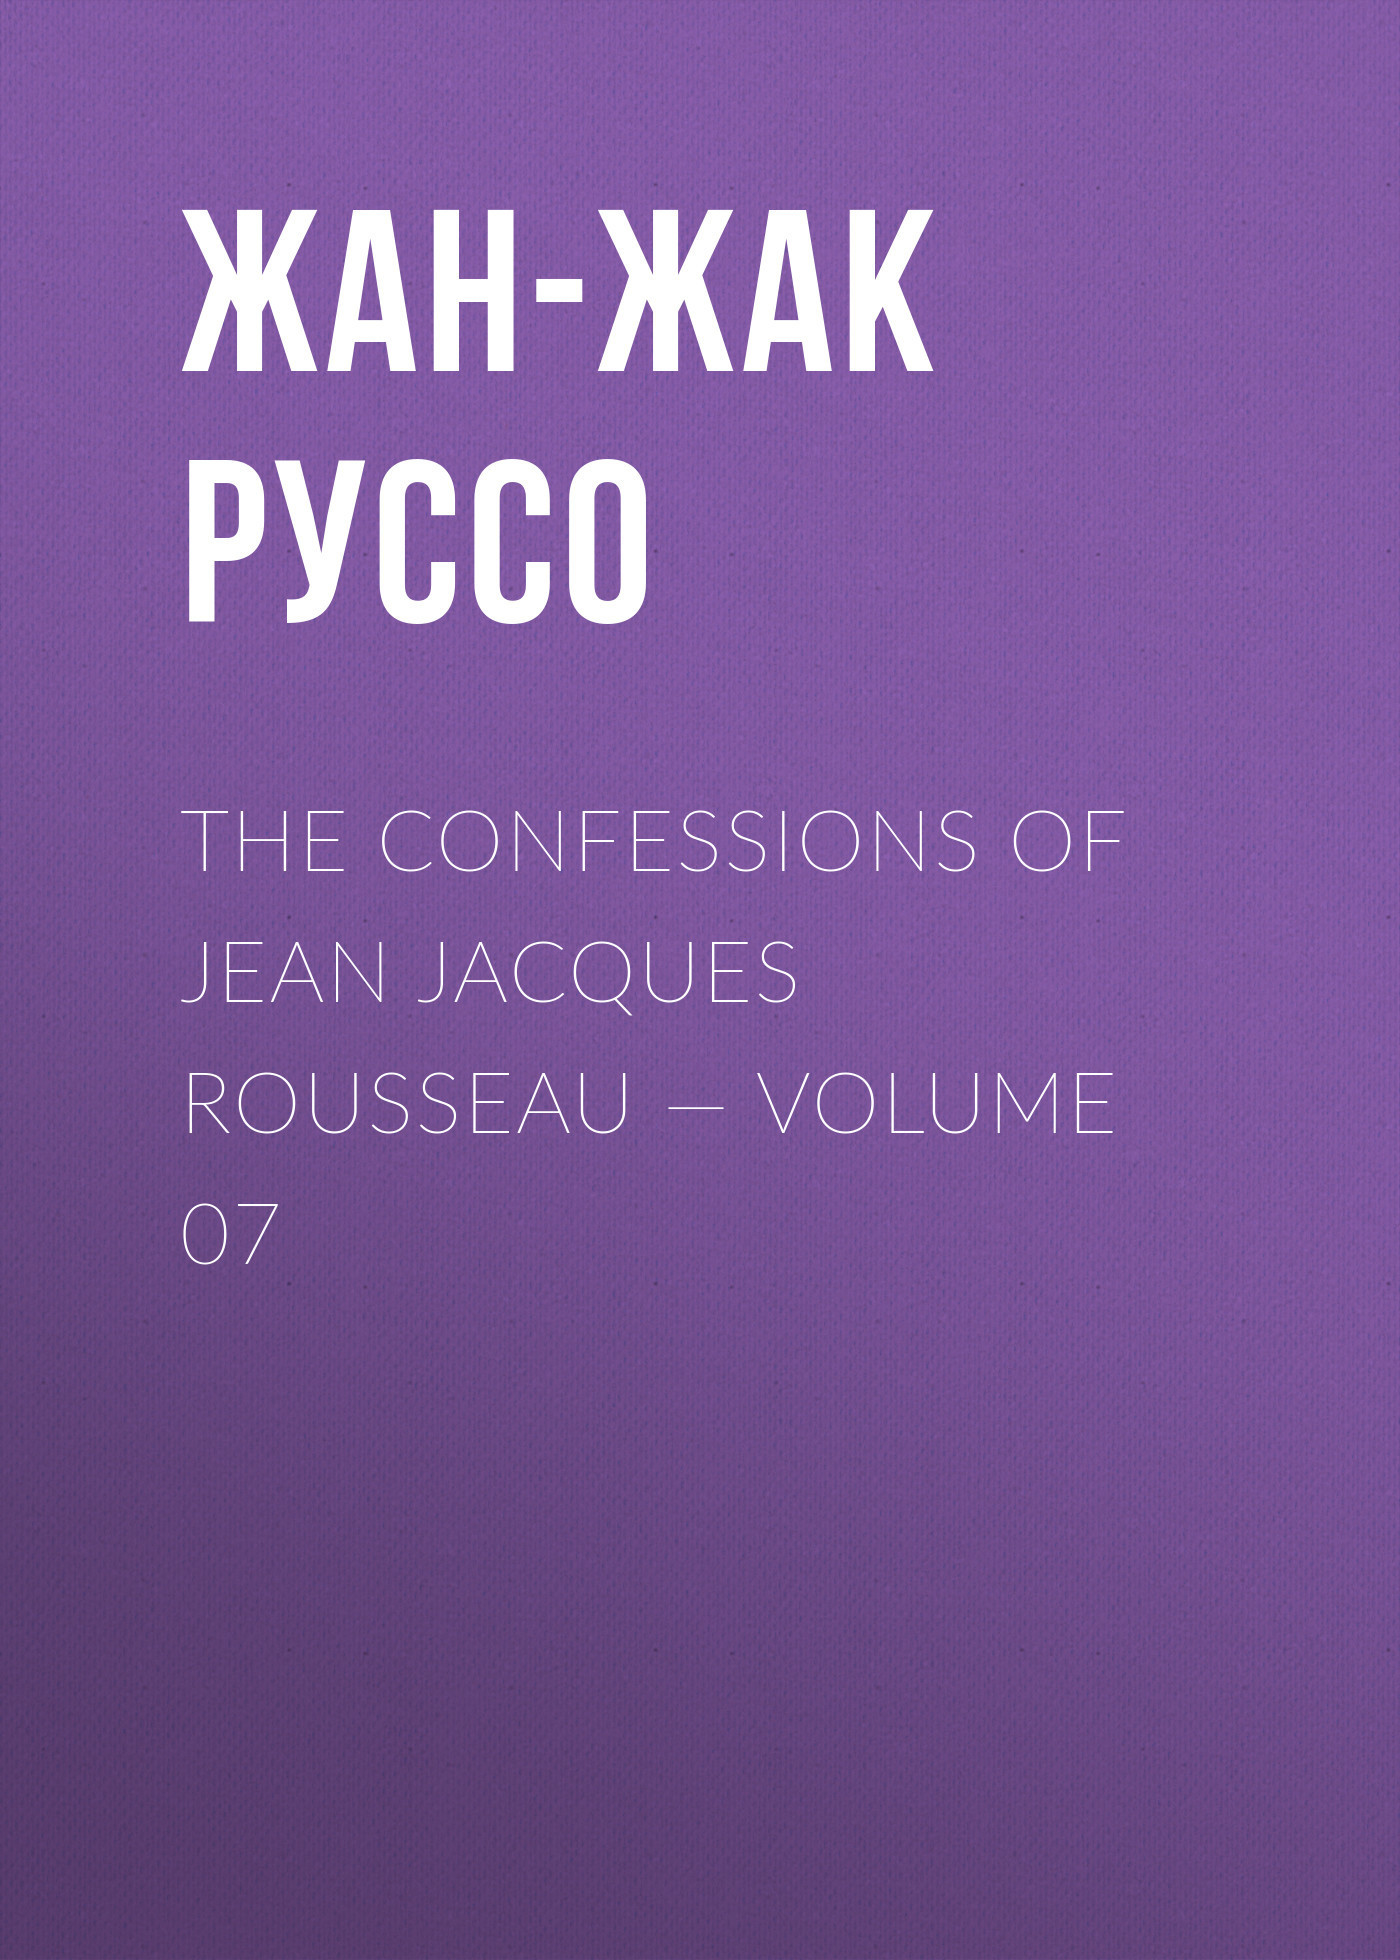 Жан-Жак Руссо The Confessions of Jean Jacques Rousseau — Volume 07 jean jacques rousseau mélanges t 2